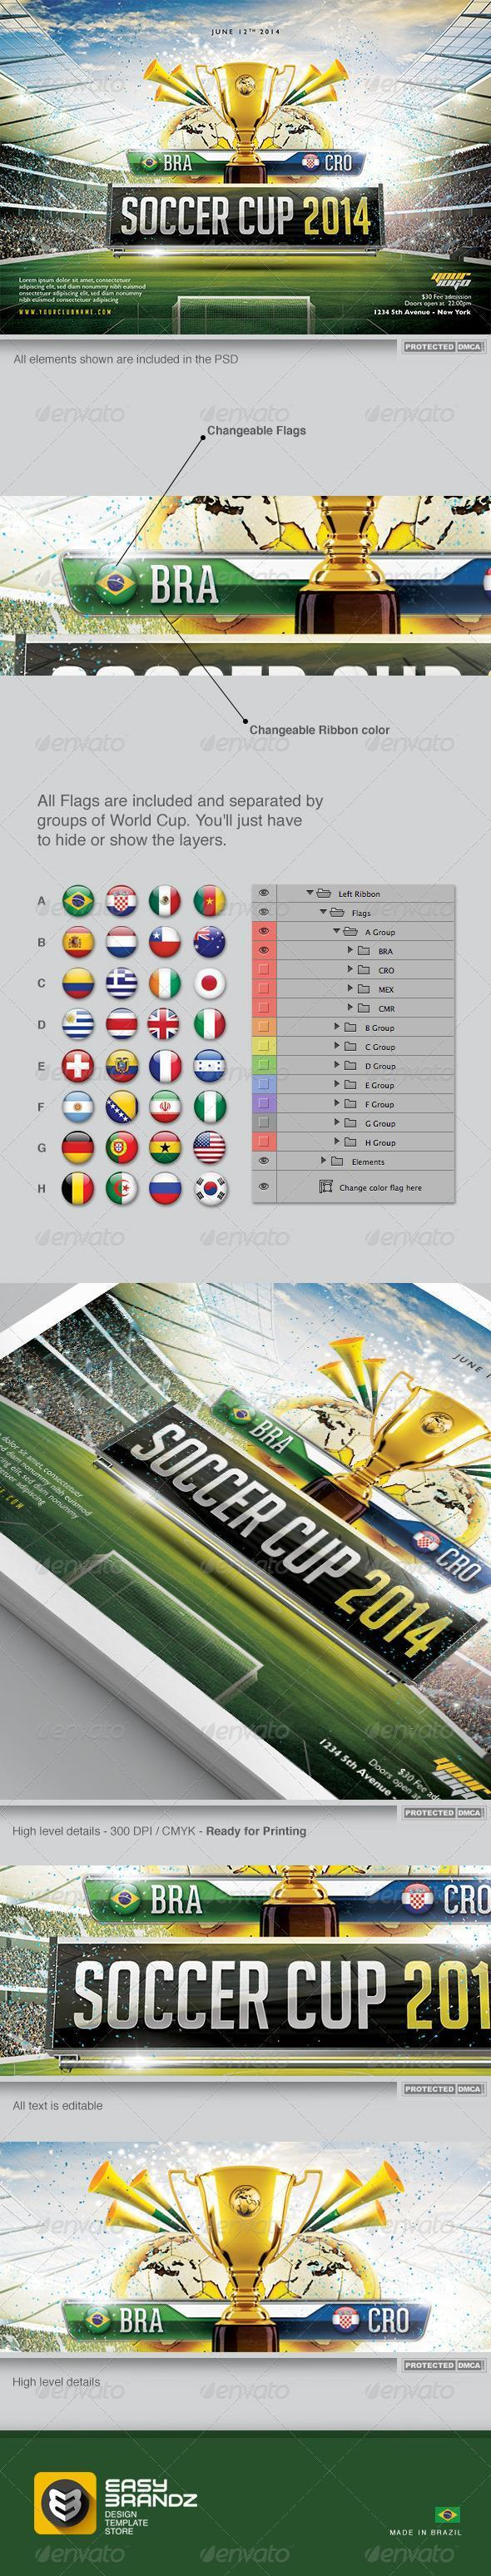 Soccer Cup 2014 Flyer Template PSD